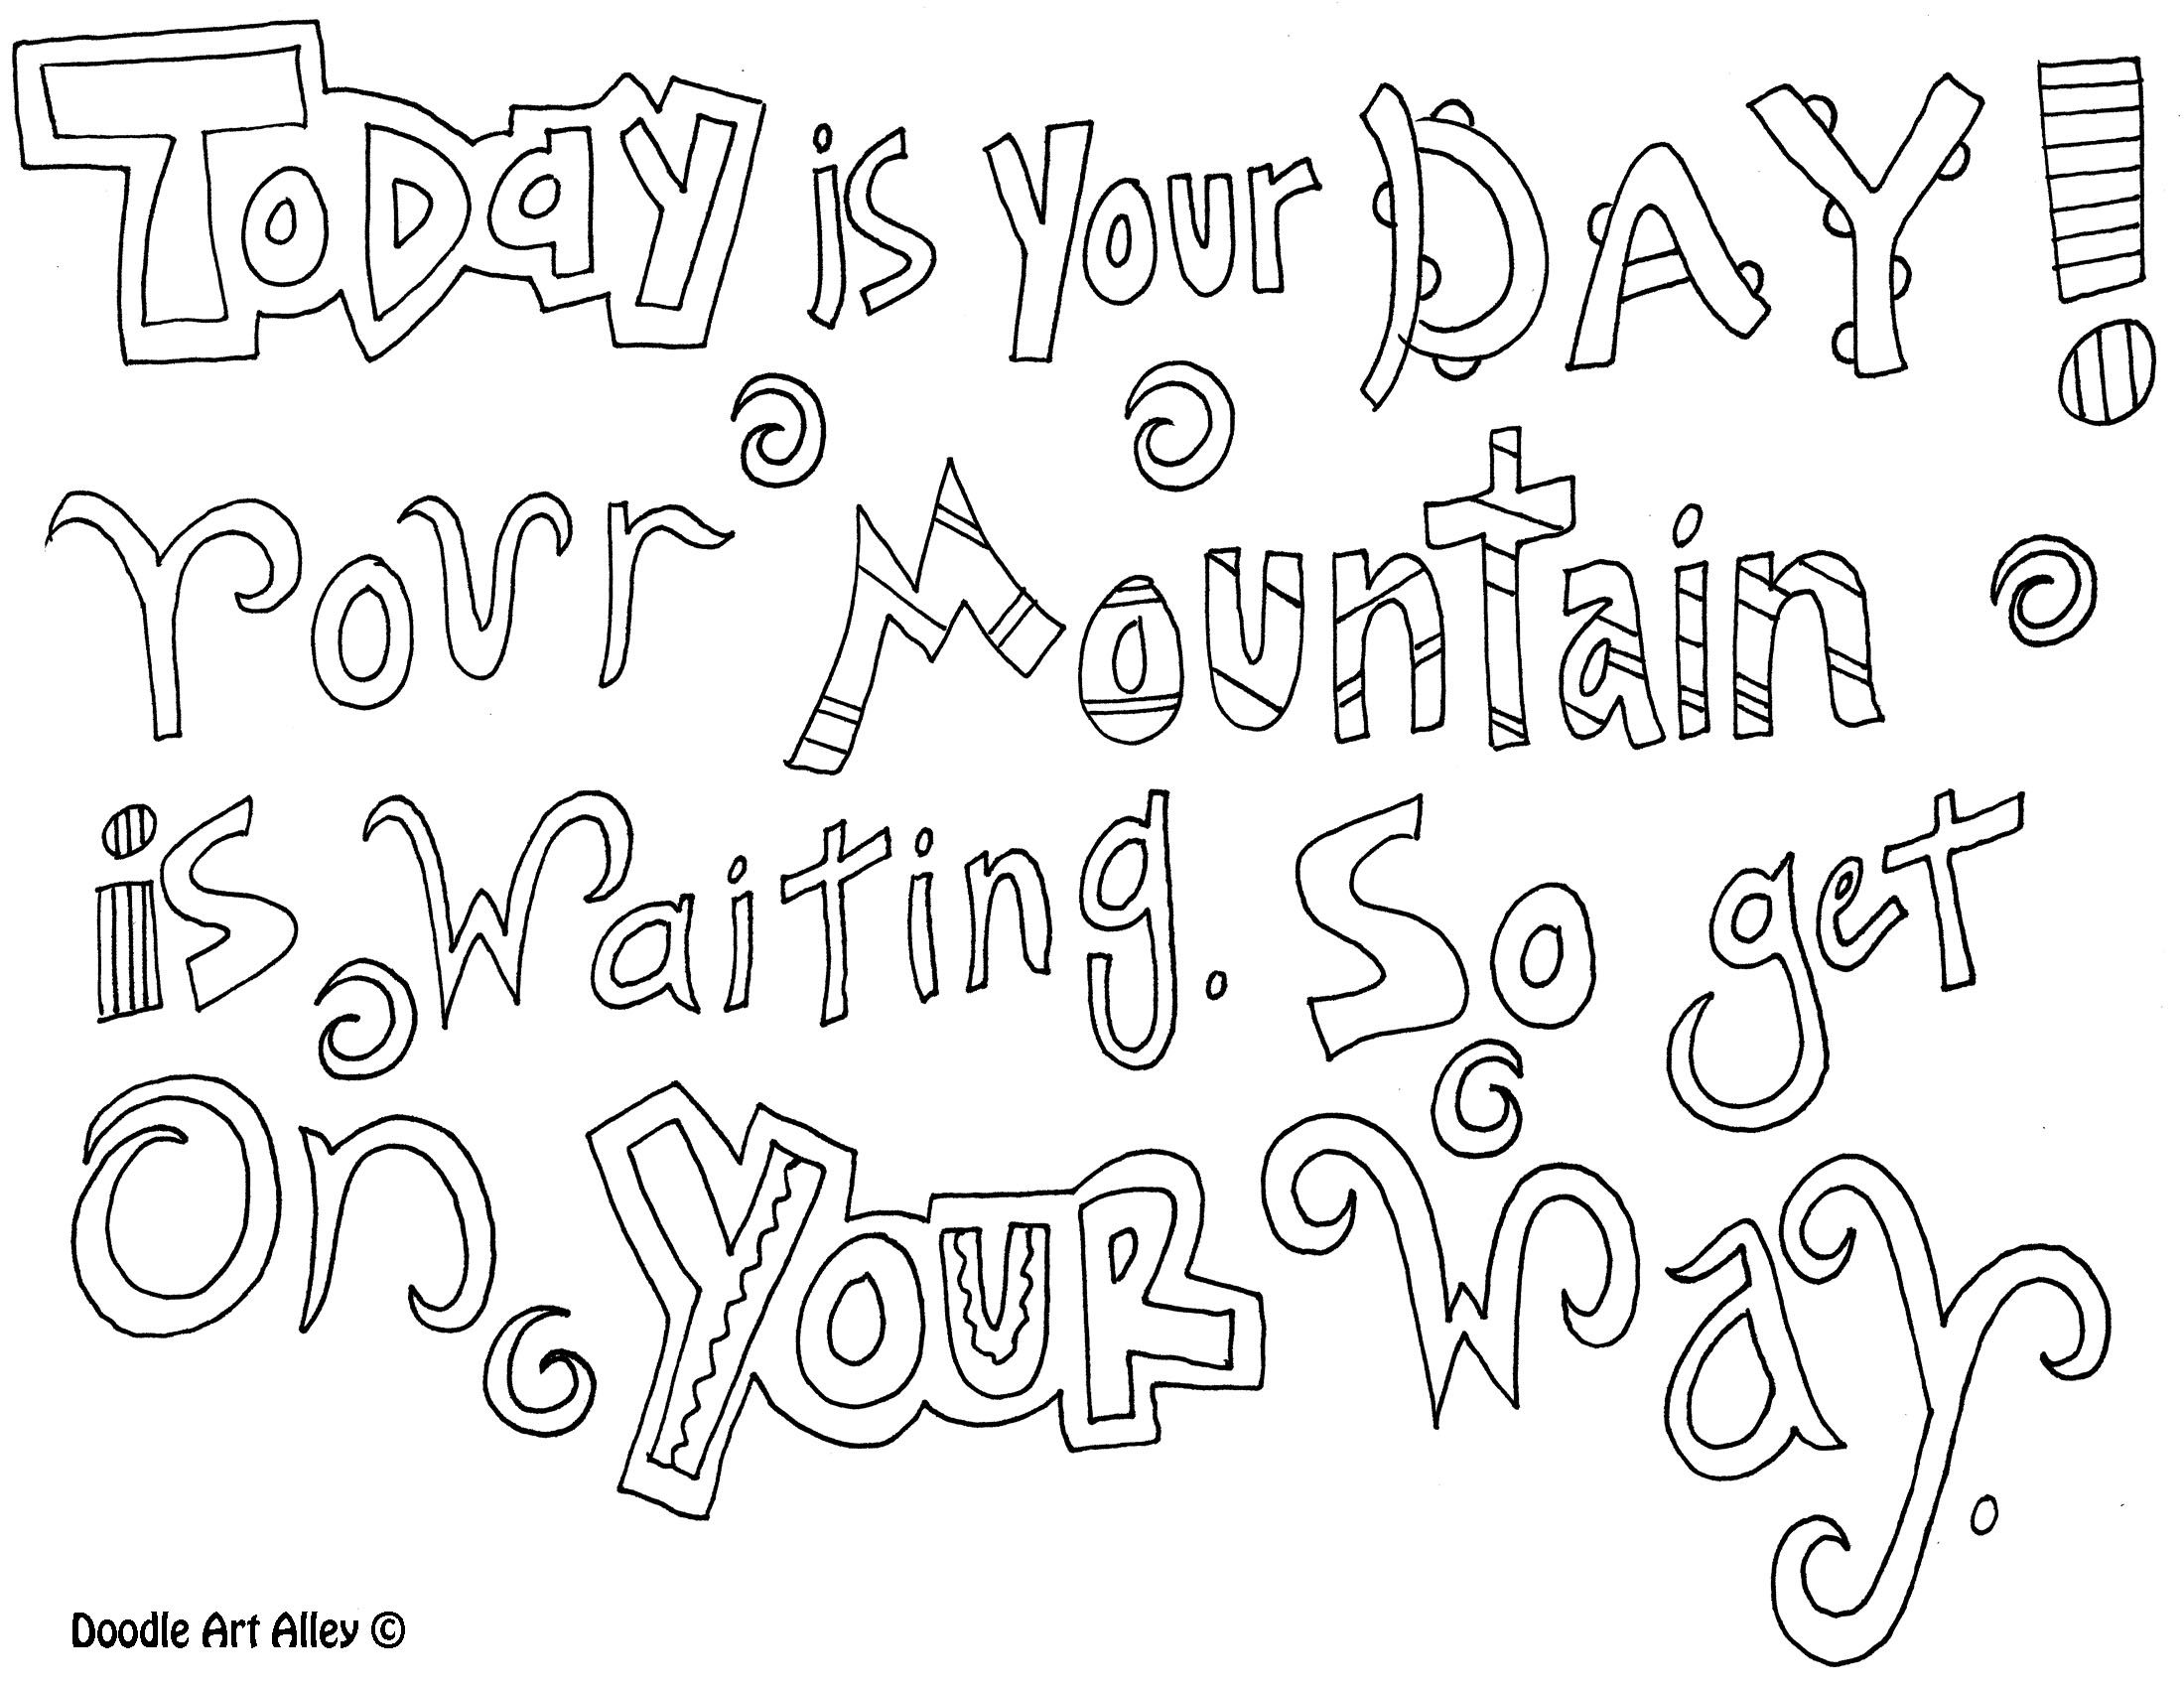 Quotes coloring pages to print - Get The Latest Free Quote Coloring Pages Images Favorite Coloring Pages To Print Online By Only Coloring Pages